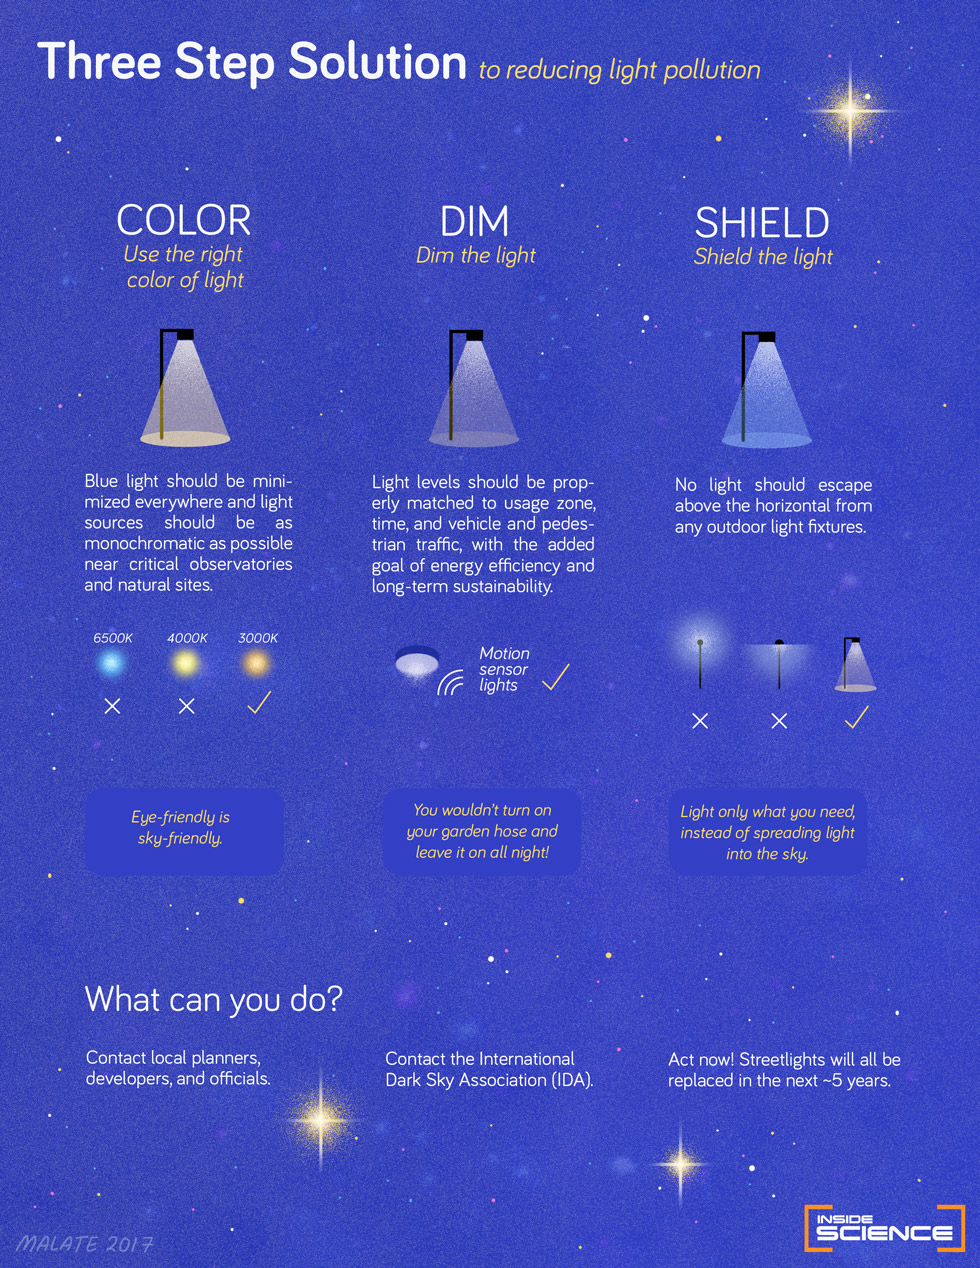 Light pollution reduction strategies